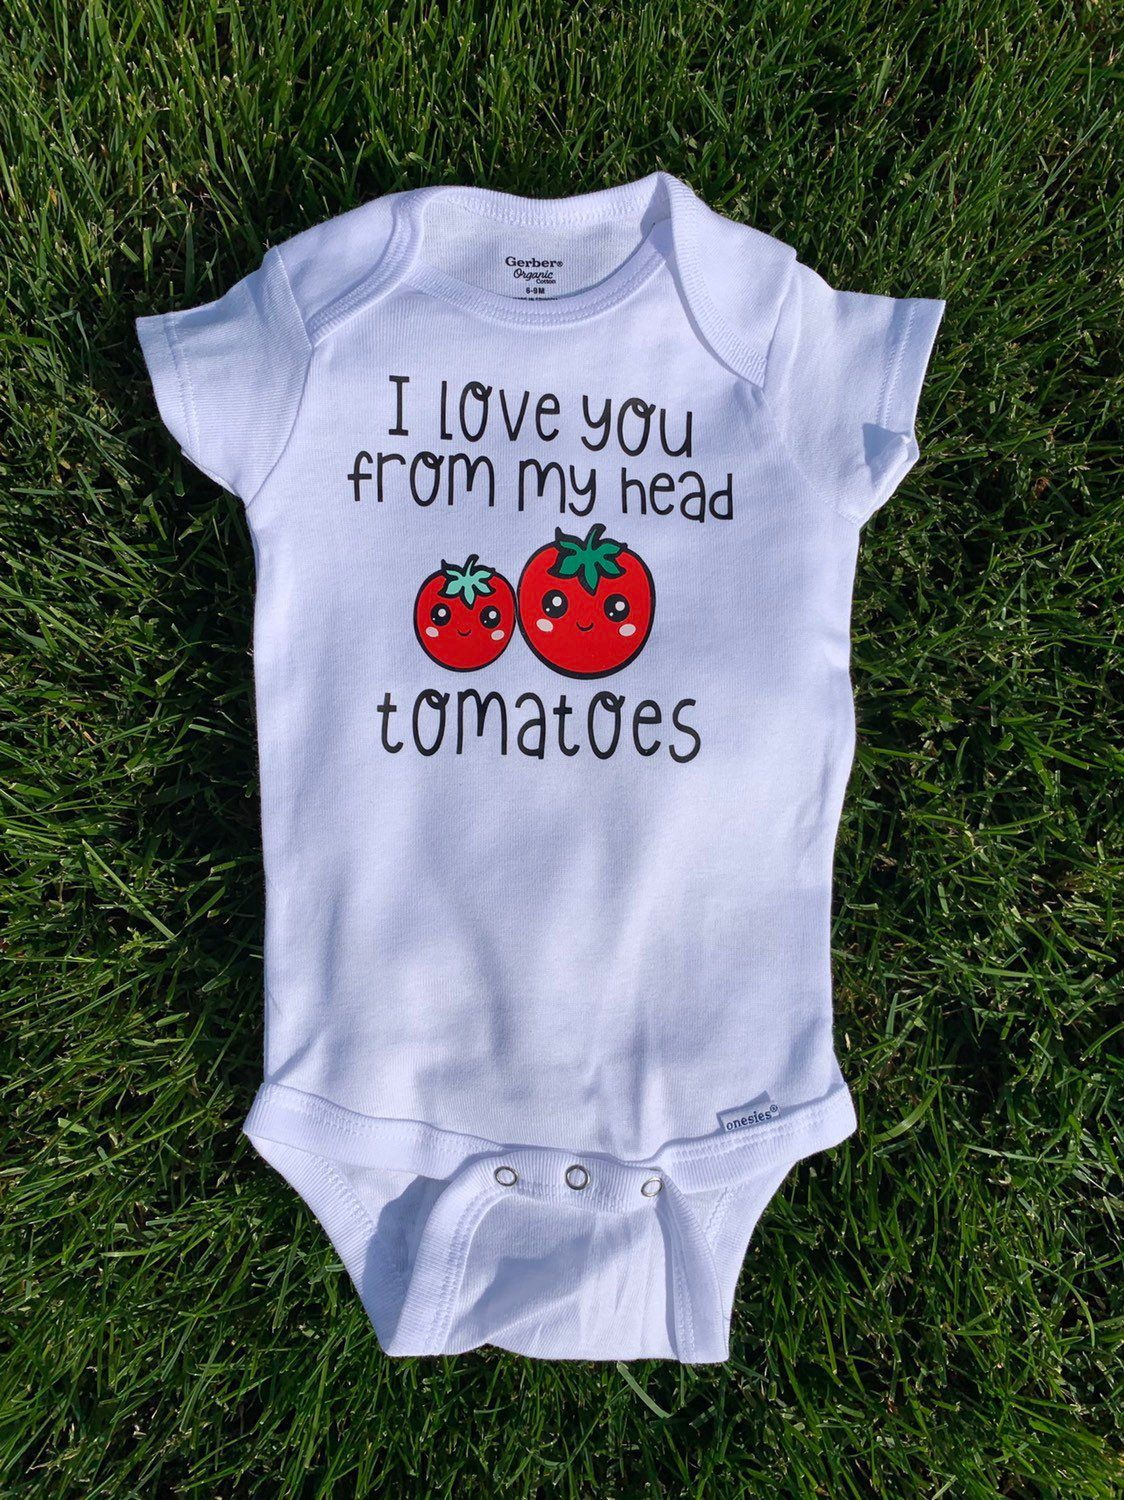 Excited To Share This Item From My Etsy Shop I Love You From My Head Tomatoes Cute Onesies Onesies For Babies Gen Cute Onesies Baby Onesies Baby Gender